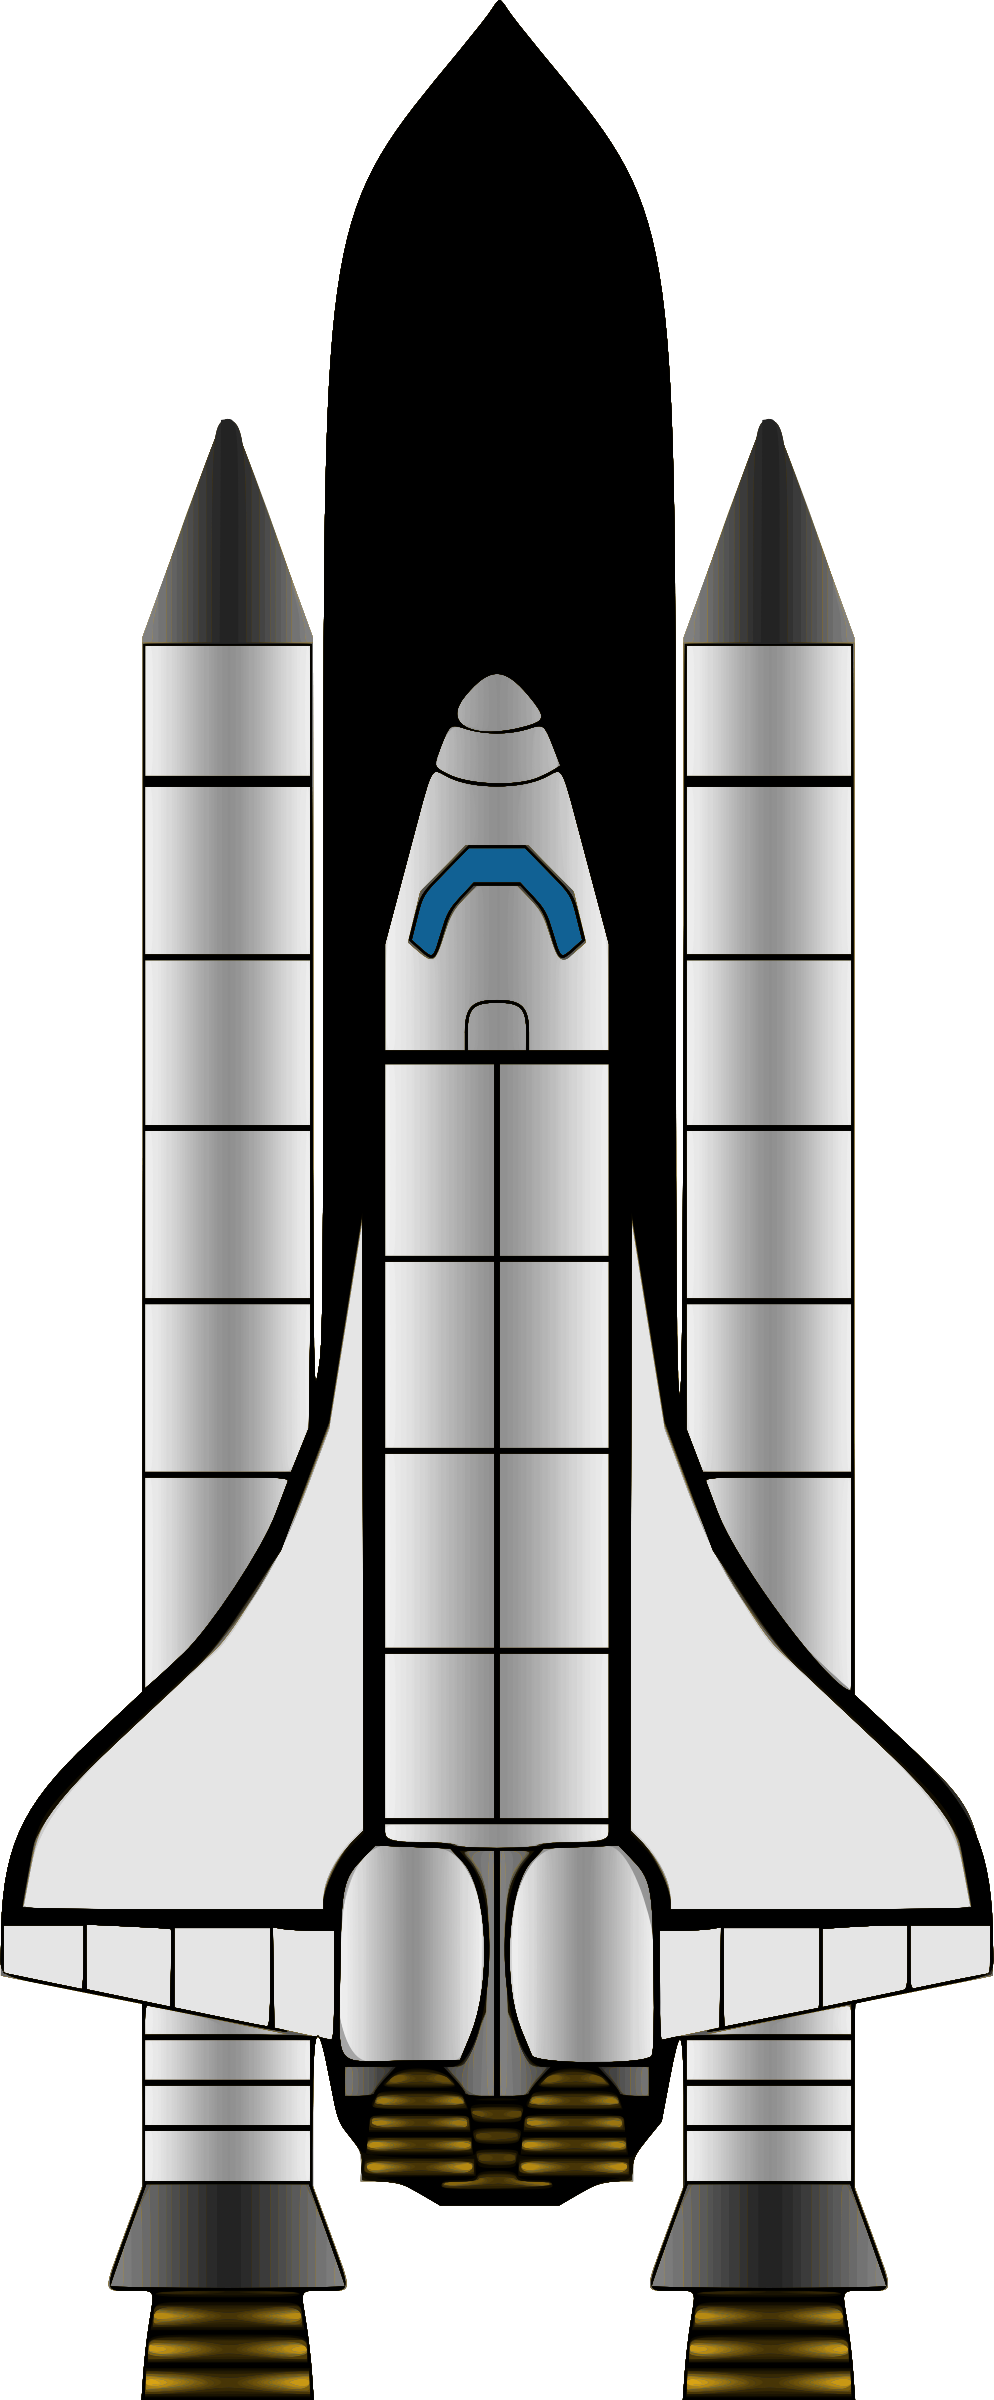 Space shuttle by Firkin